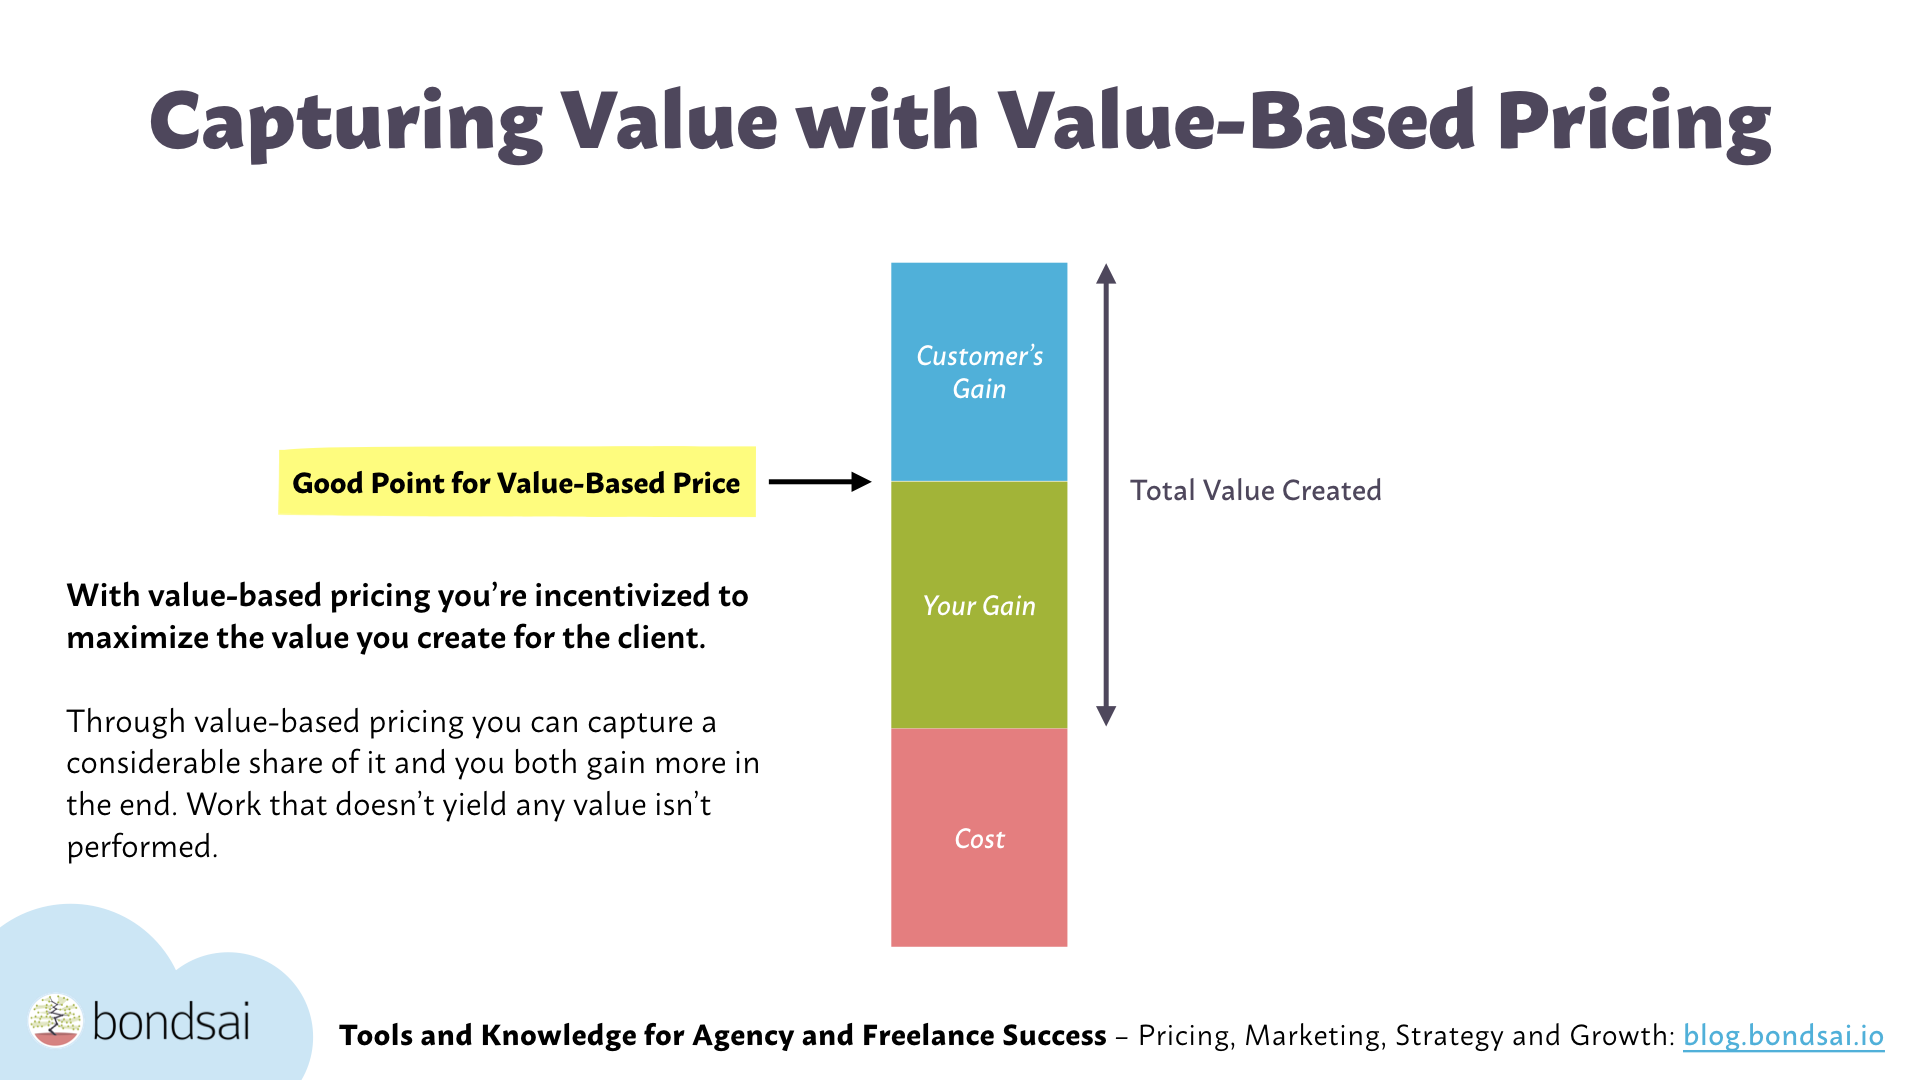 Capturing value with value-based pricing